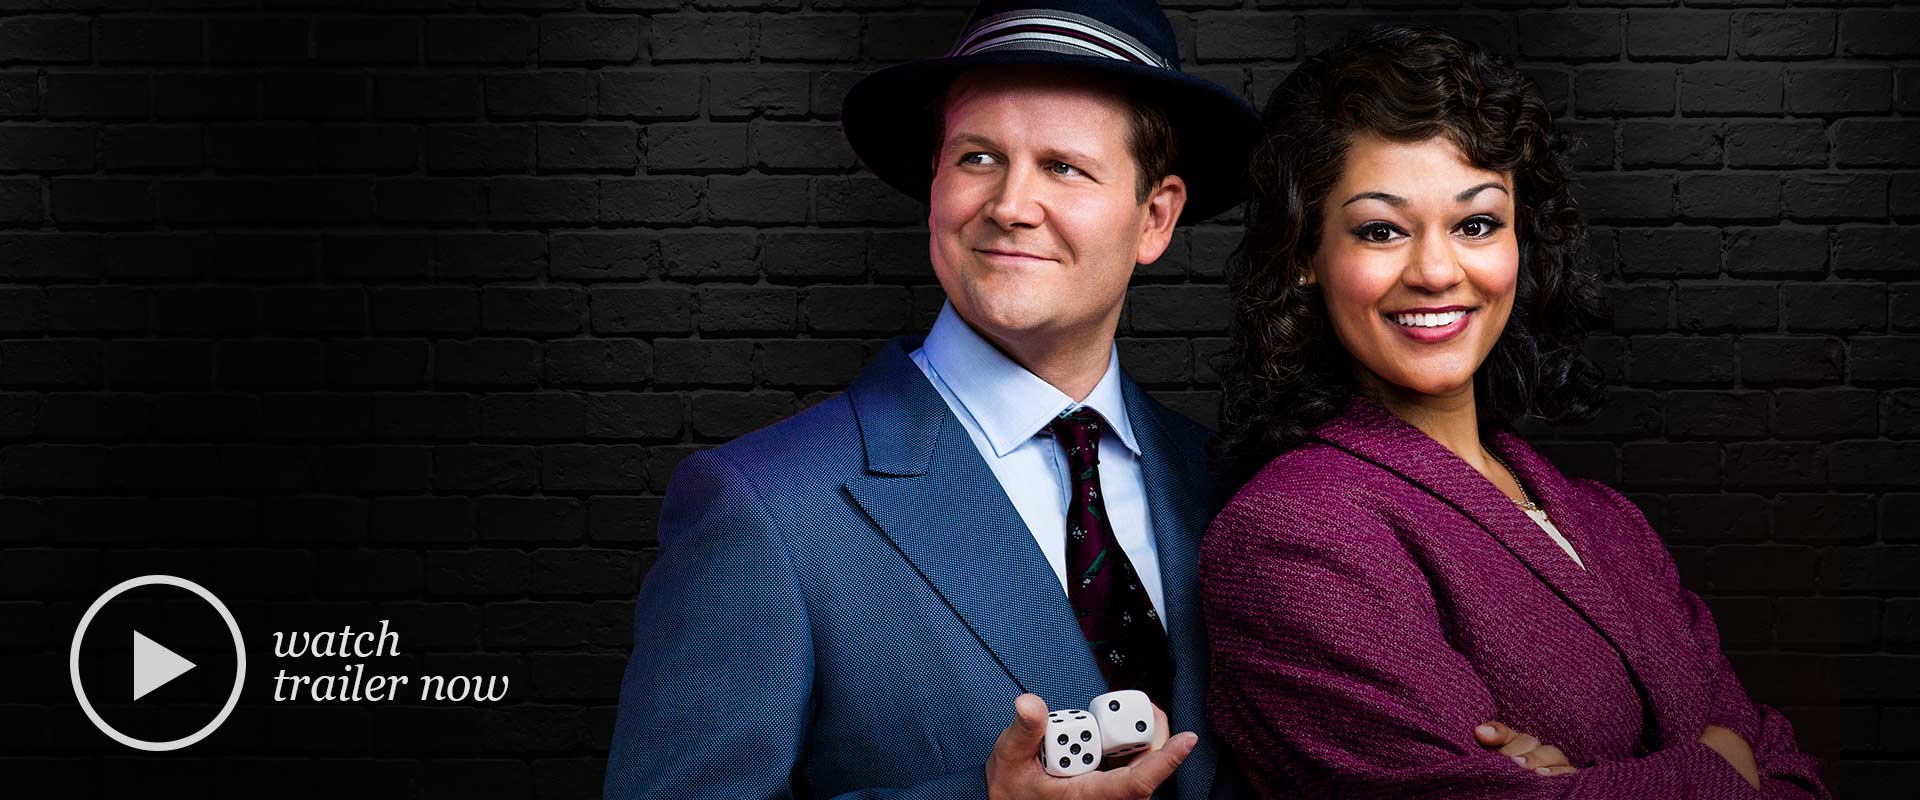 Publicity image from Guys & Dolls featuring Evan Buliung and Alexis Gordon